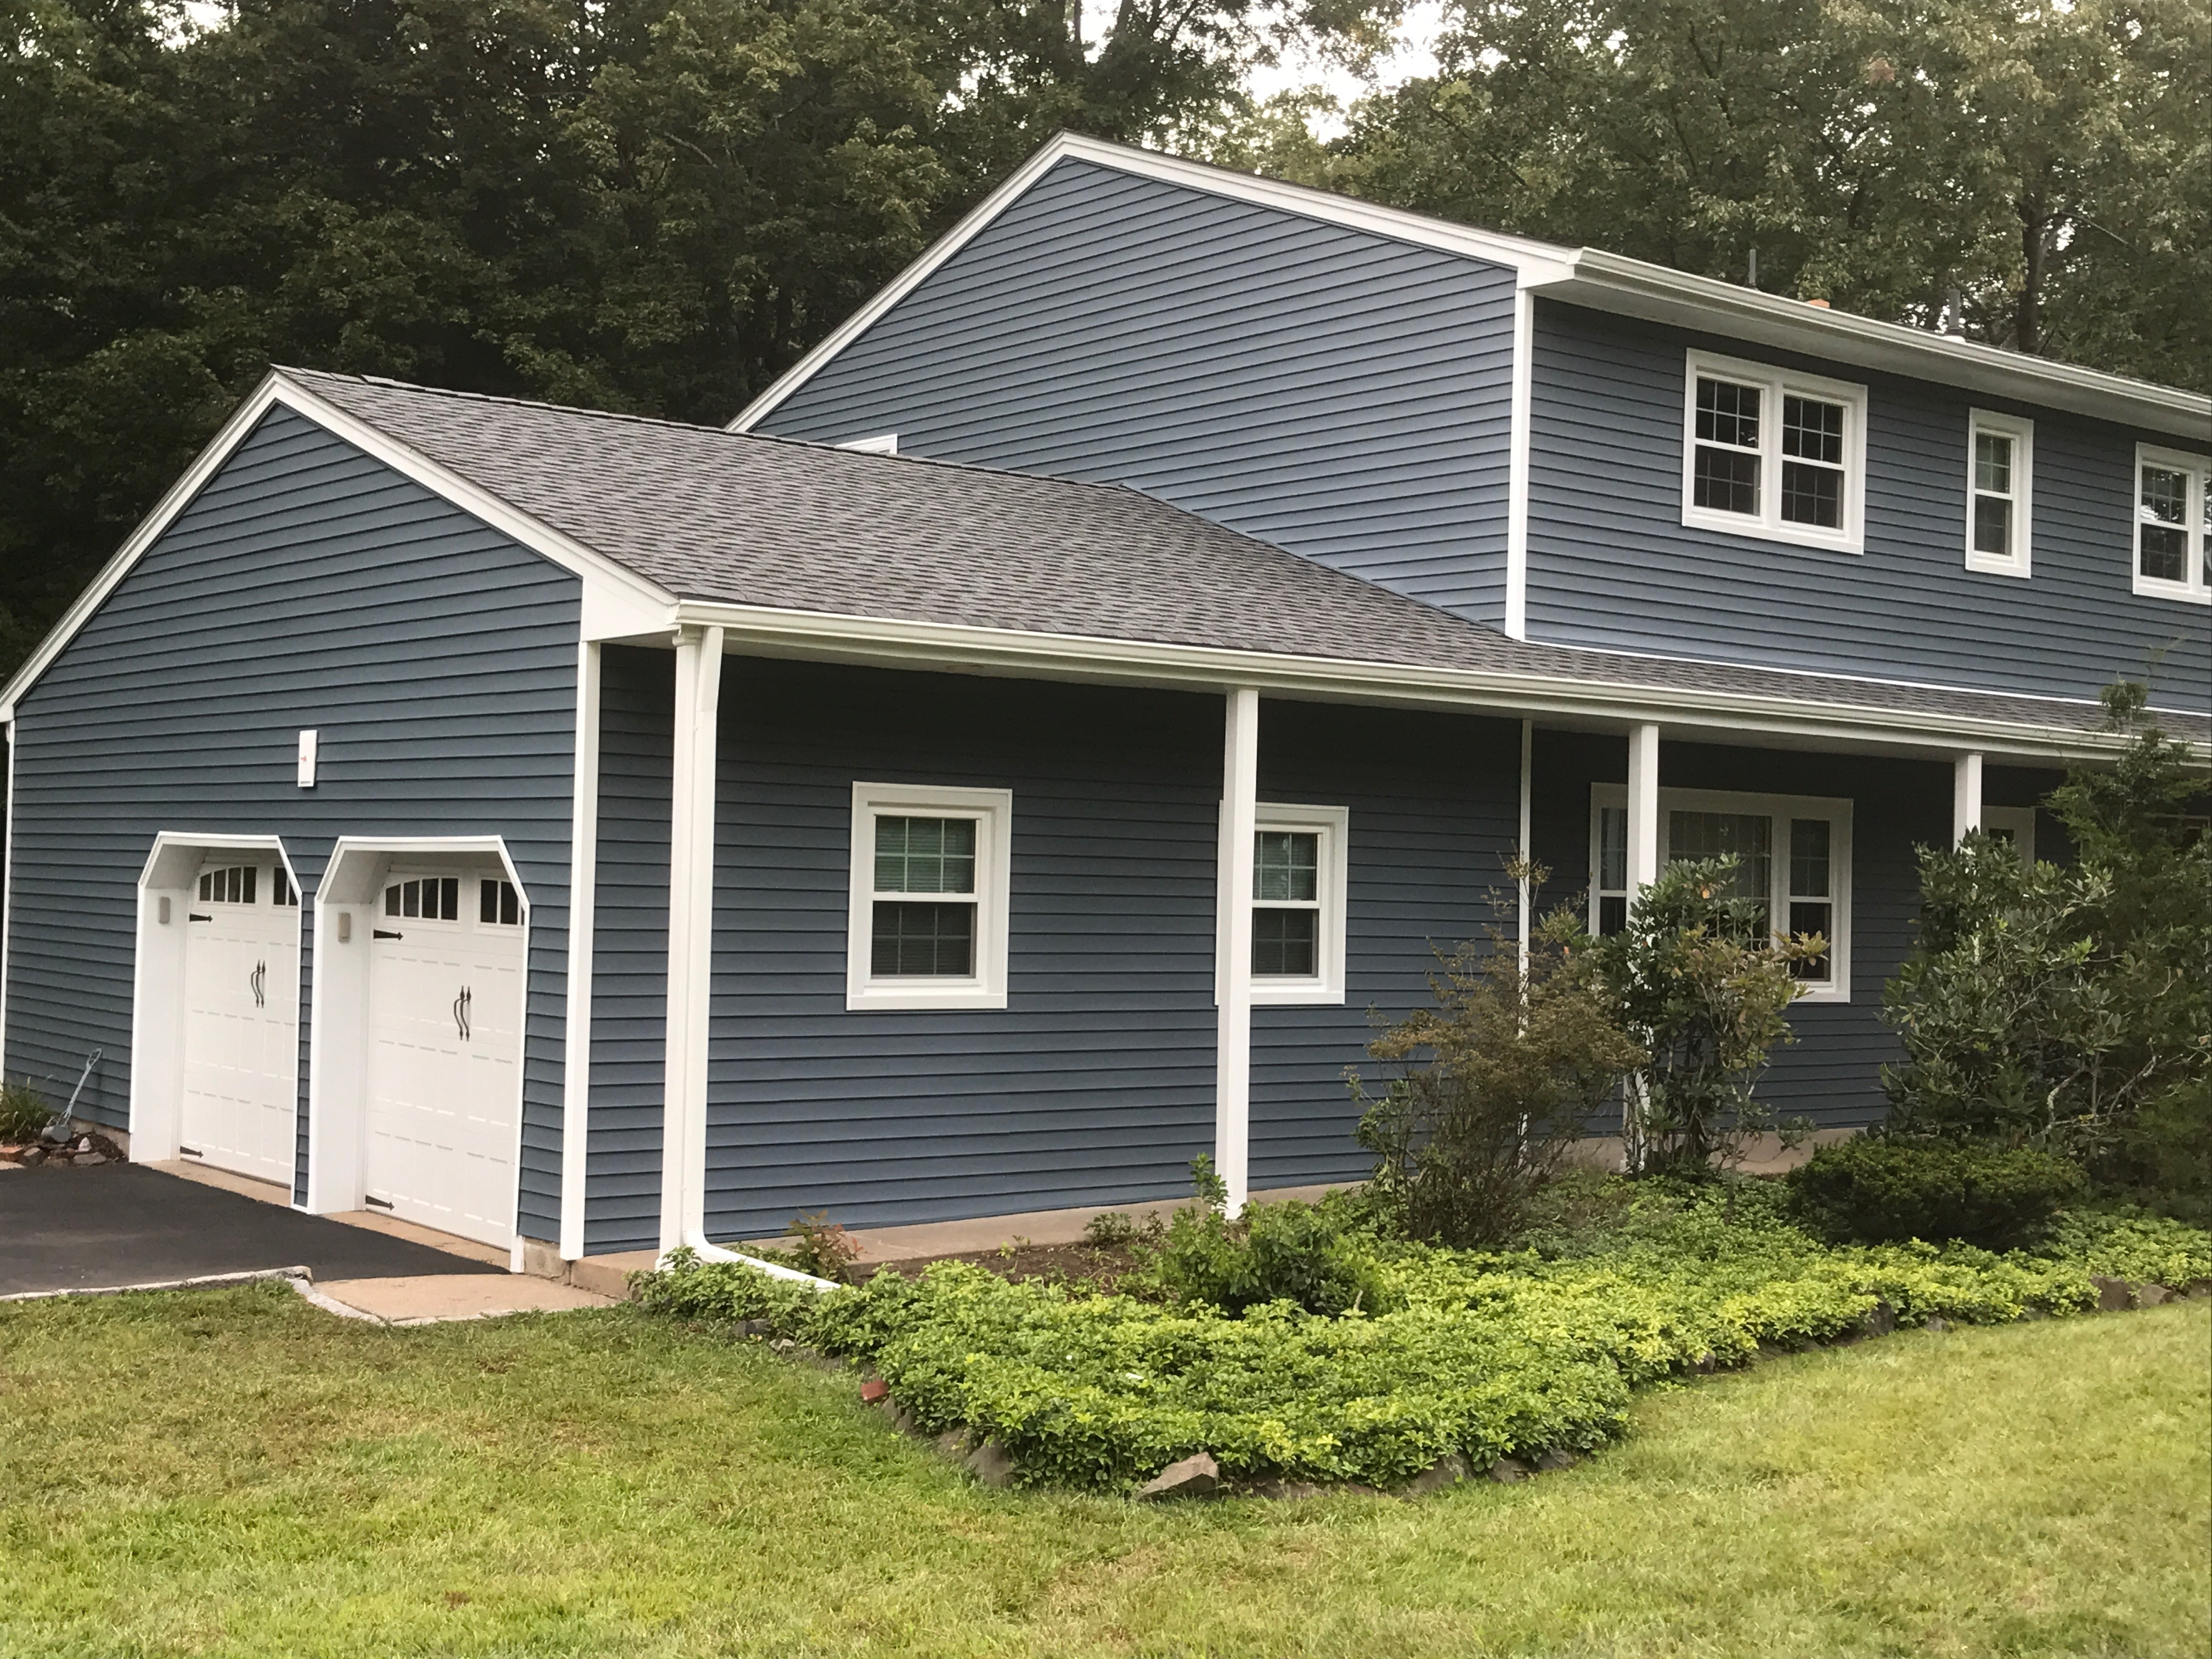 A McCollum Roofing & Siding Project in Montville NJ. New Alside Double 4 Vinyl Siding, Clap Board.